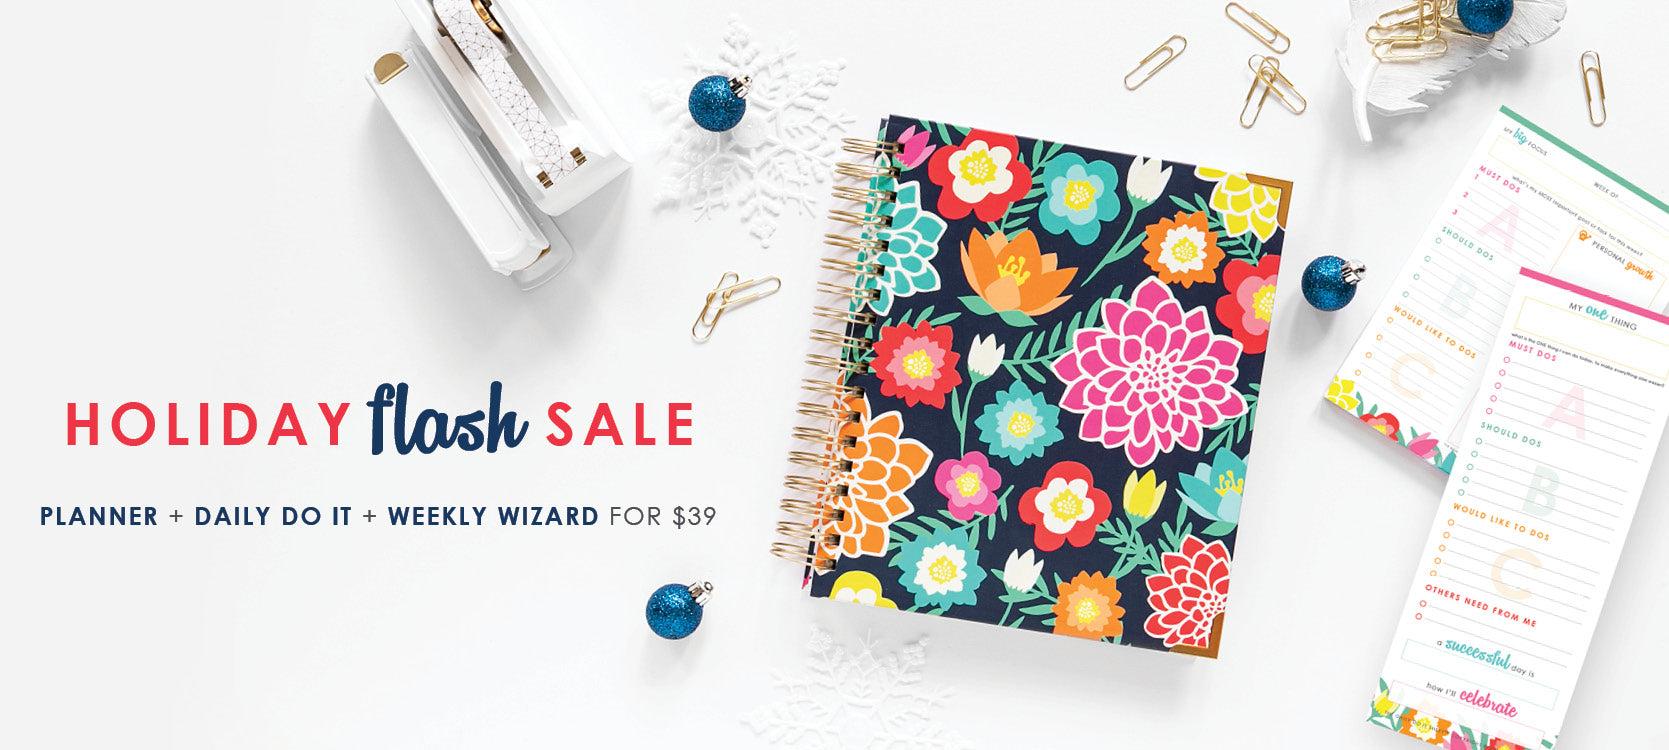 holiday flash sale collection living well shop